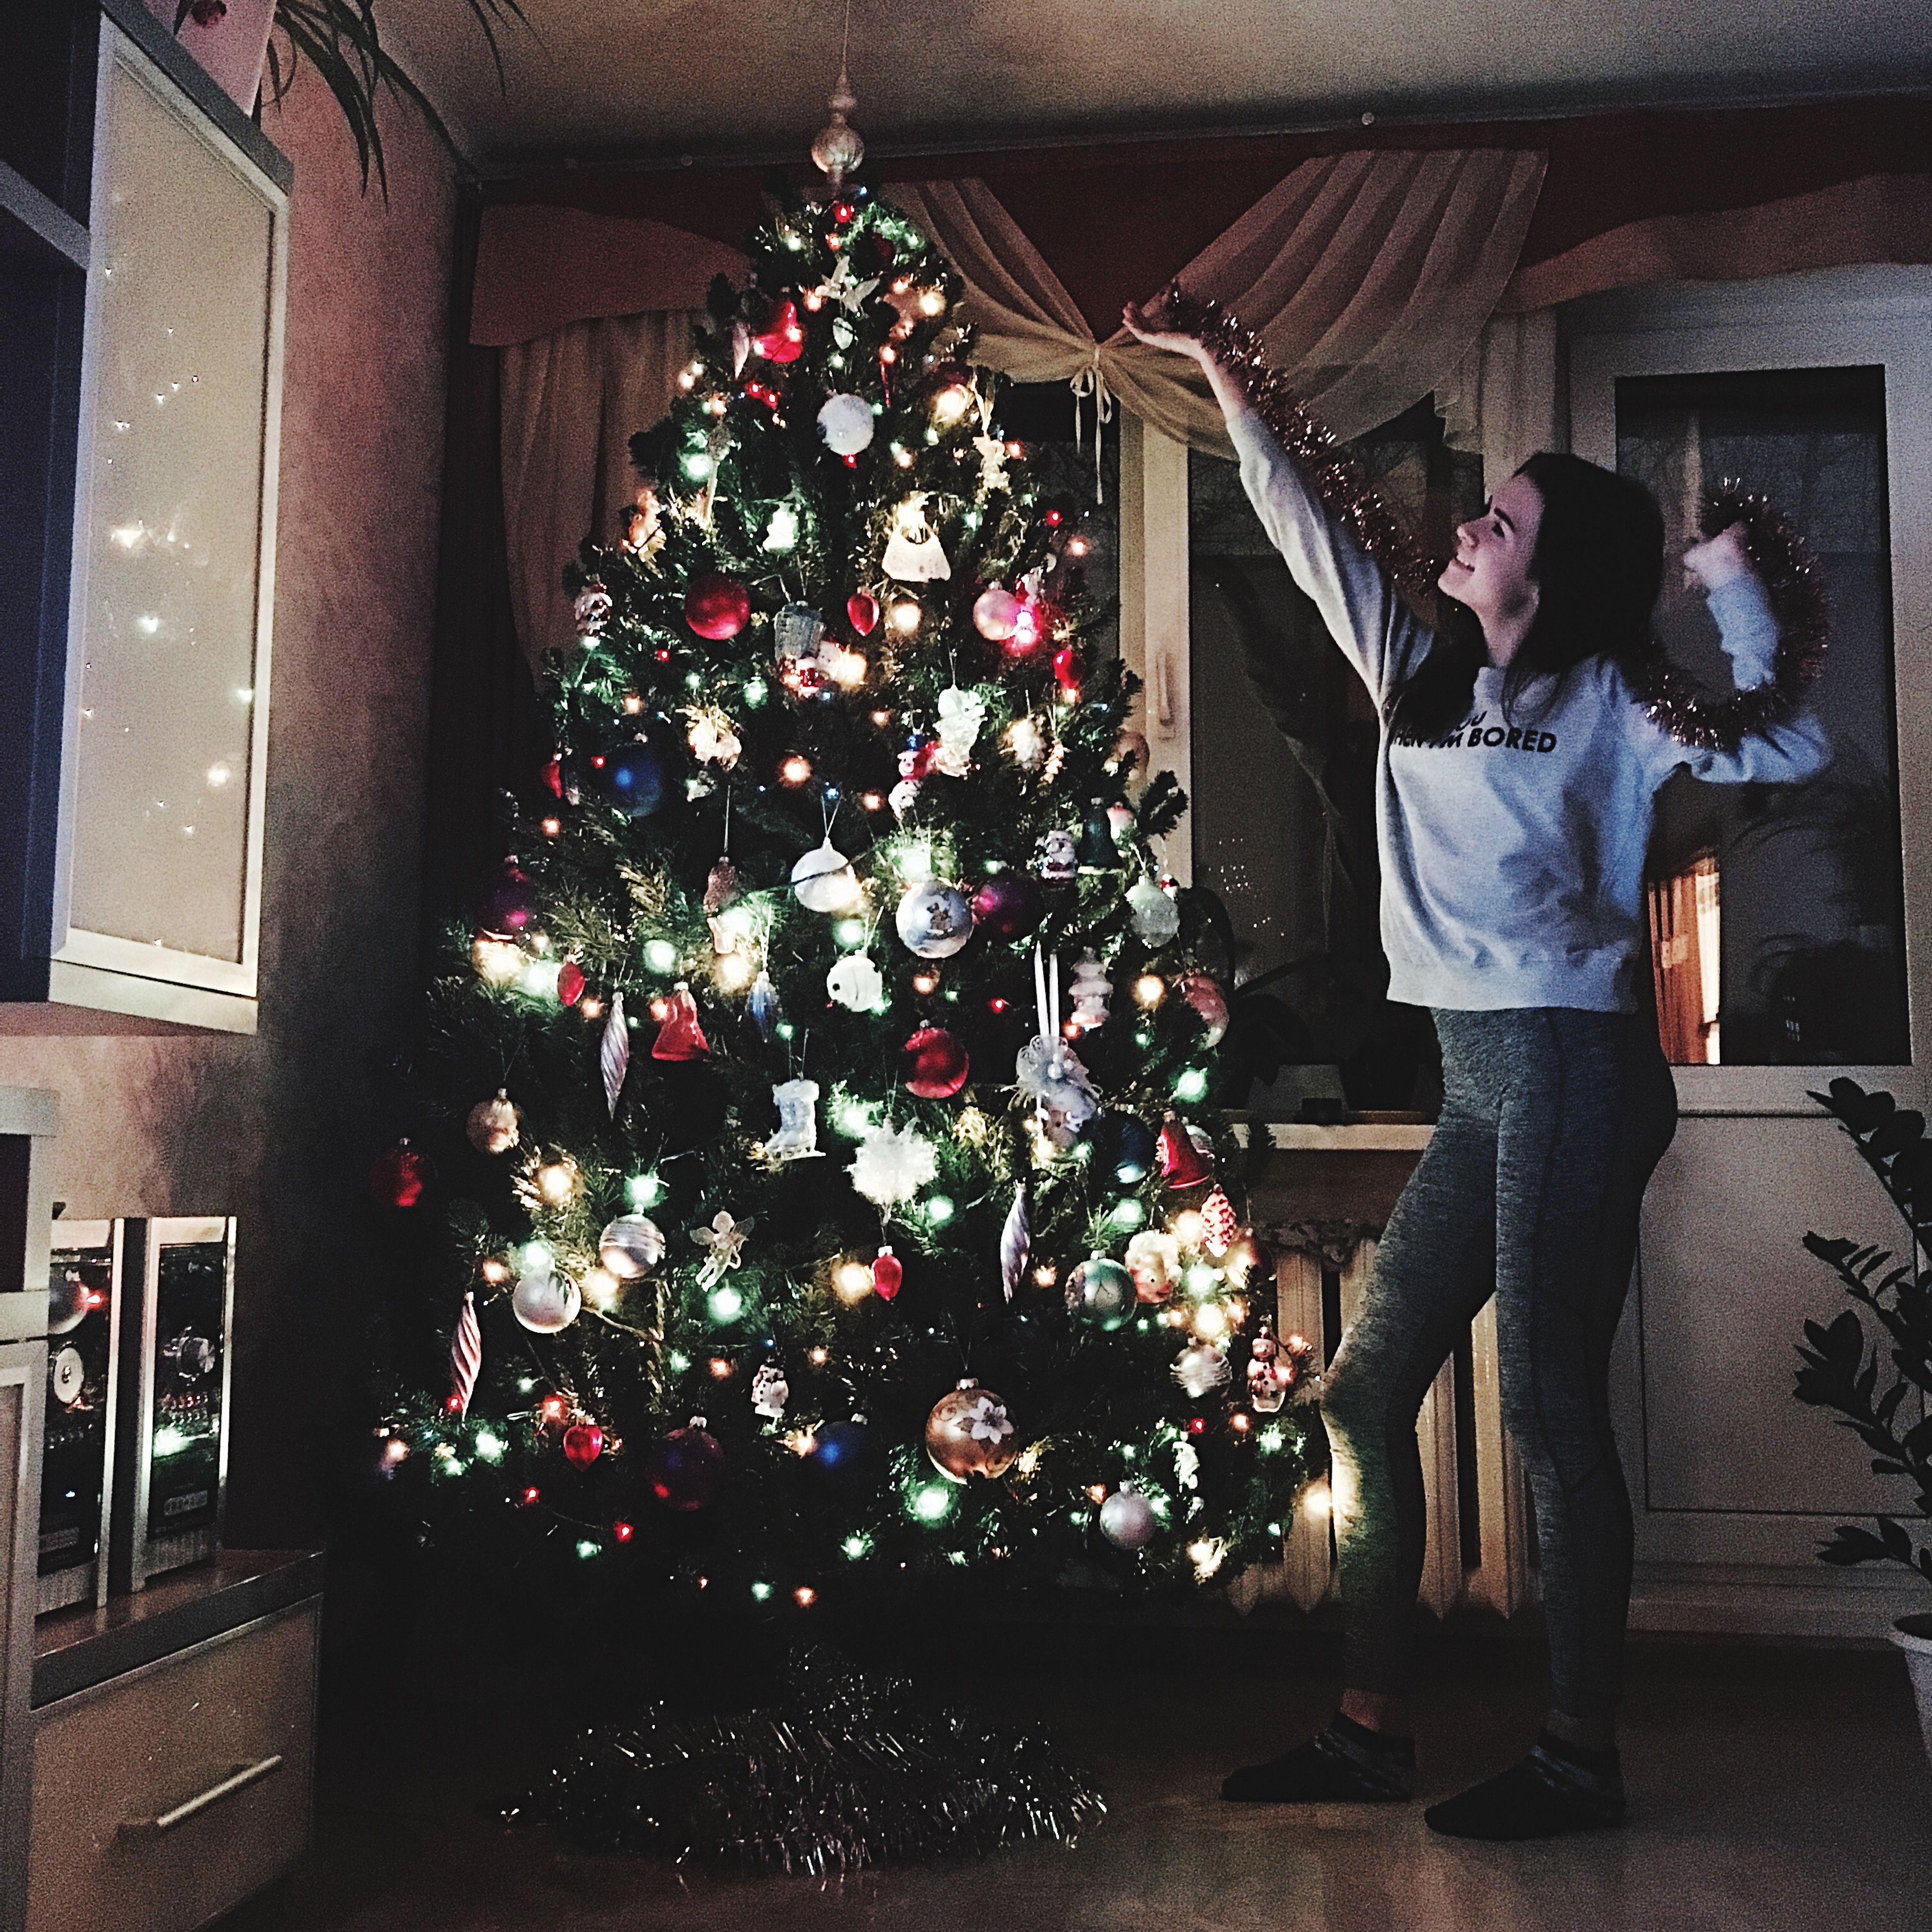 christmas, christmas tree, celebration, christmas decoration, tree, christmas ornament, two people, illuminated, christmas present, holiday - event, adults only, christmas lights, wineglass, gift, happiness, people, living room, house, indoors, wine, women, event, alcohol, adult, young adult, advent